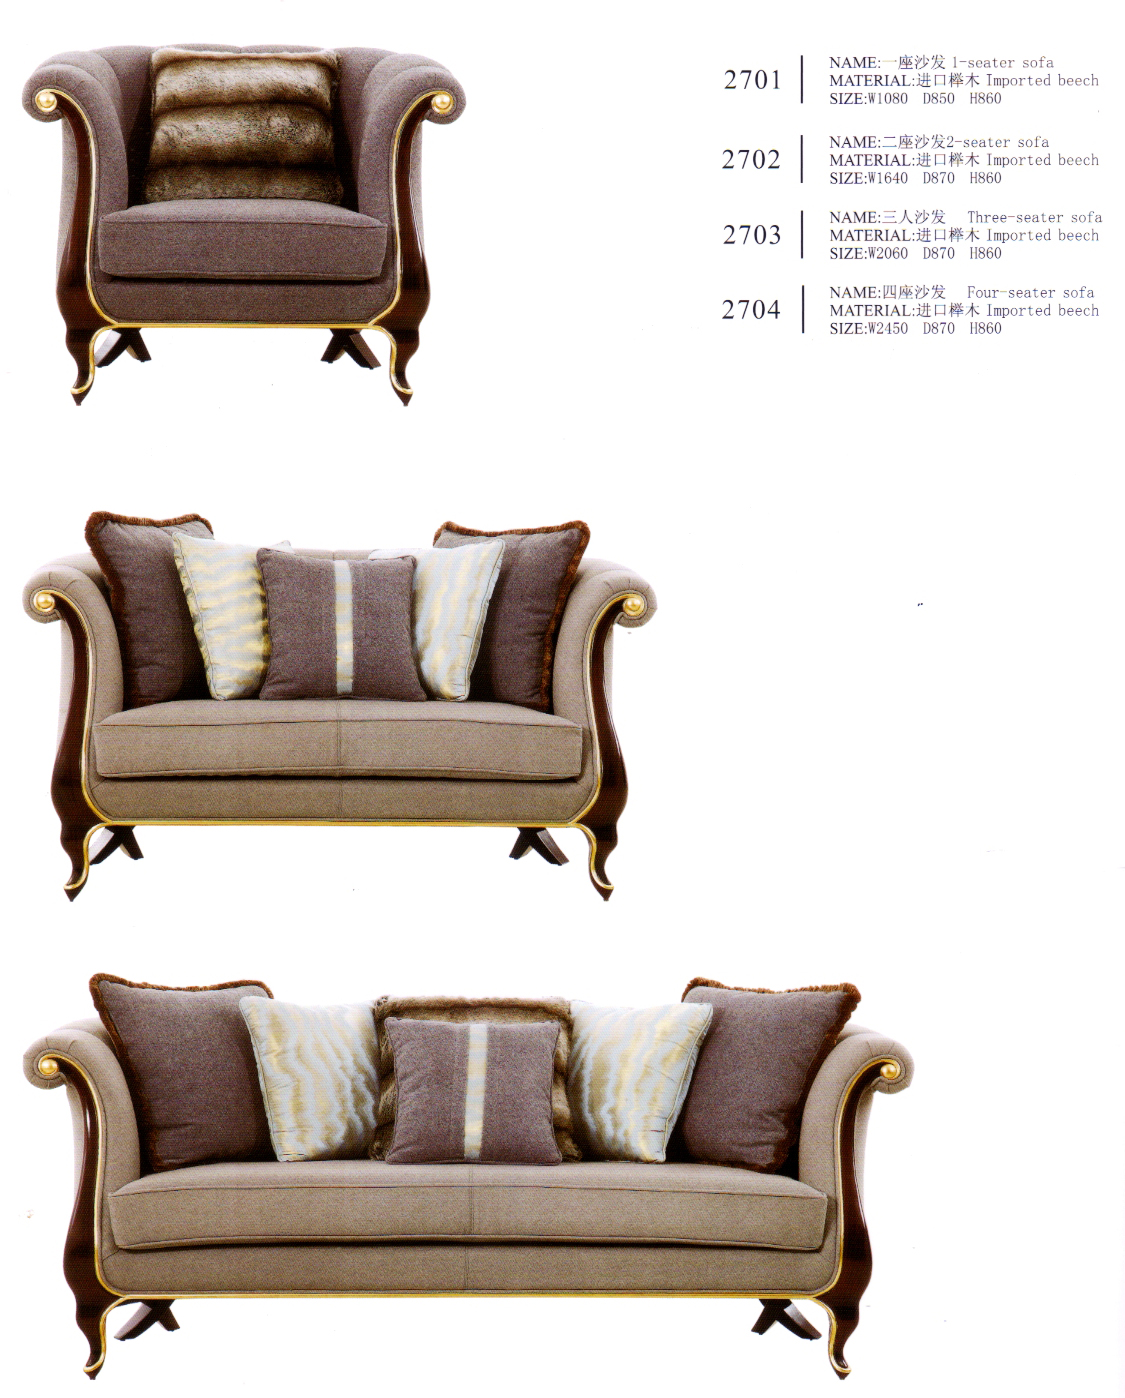 Drawn sofa cleopatra style Classical Berry Sofa top supplies